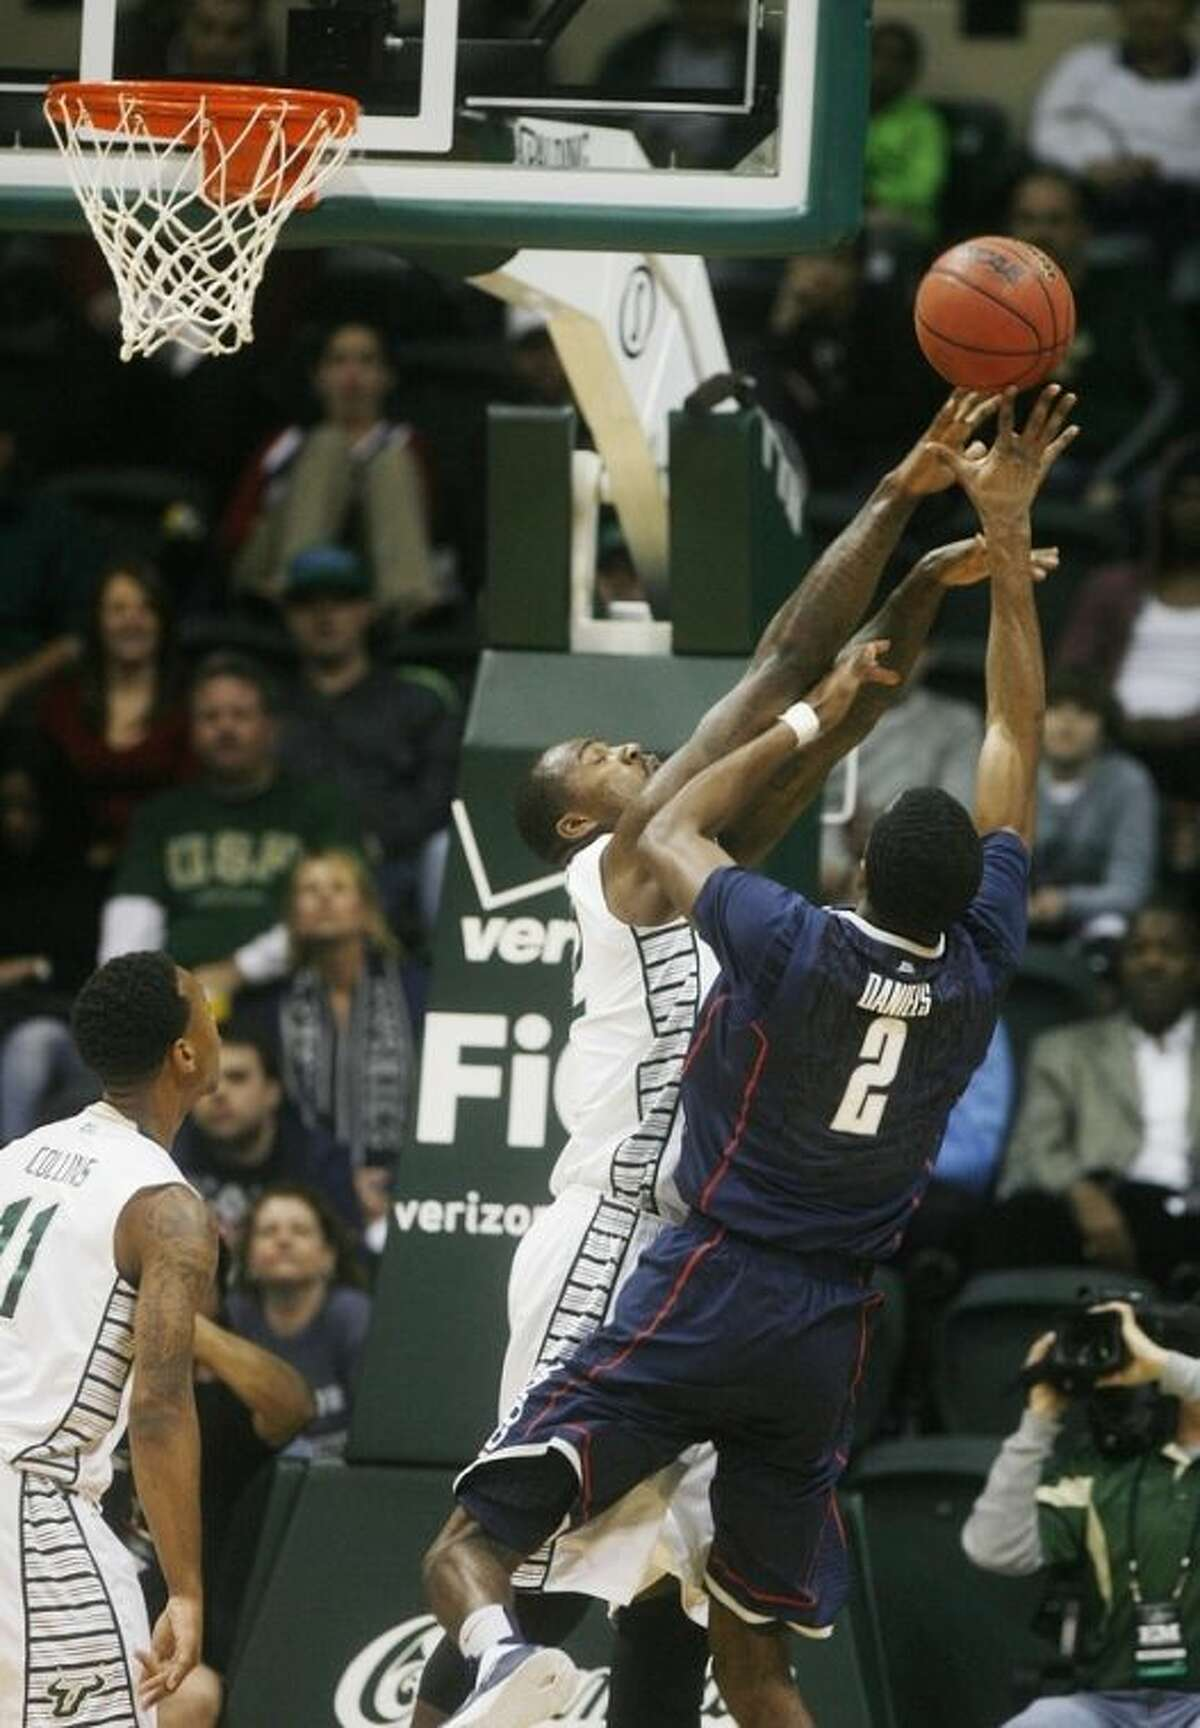 South Florida's Toarlyn Fitzpatrick (32) blocks the shot of Connecticut's Deandre Daniels (2) during the first half of an NCAA college basketball game Wednesday, March 6, 2013, in Tampa, Fla. (AP Photo/The Tampa Bay Times, Octavio Jones) TAMPA, CITRUS COUNTY, PORT CHARLOTTE, AND BROOKSVILLE HERNANDO TODAY OUT USA TODAY OUT